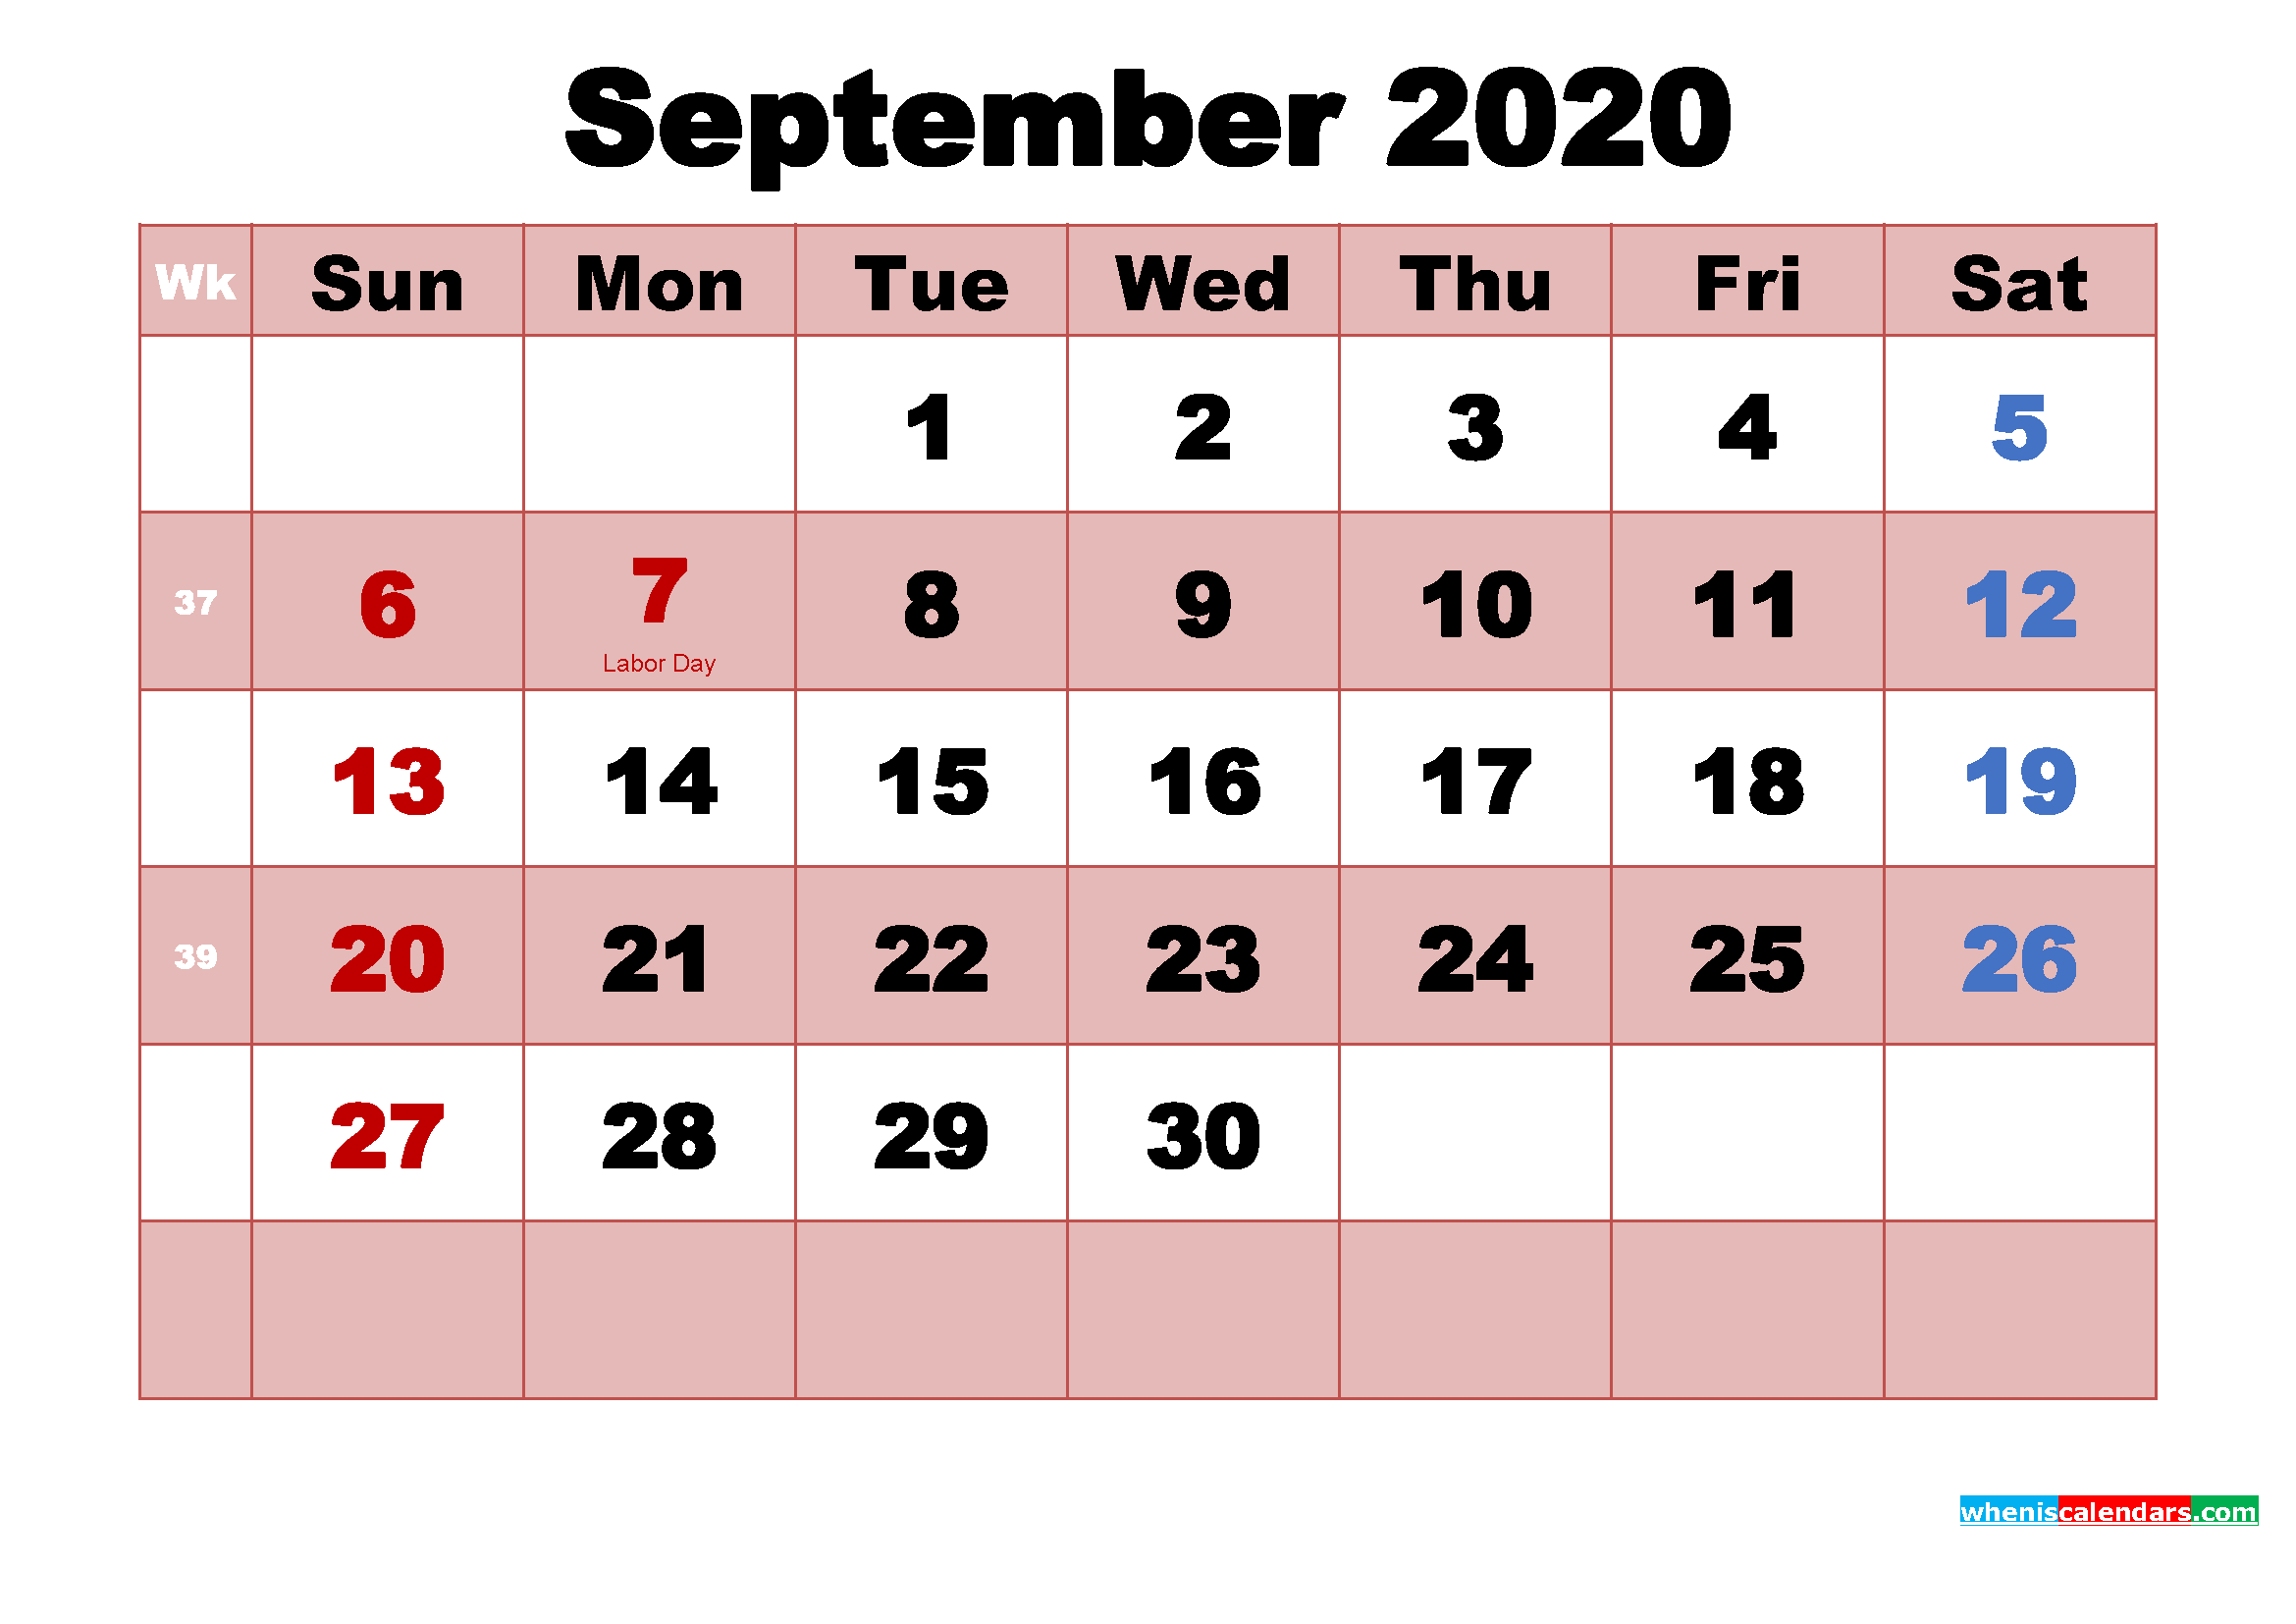 Printable September 2020 Calendar by Month